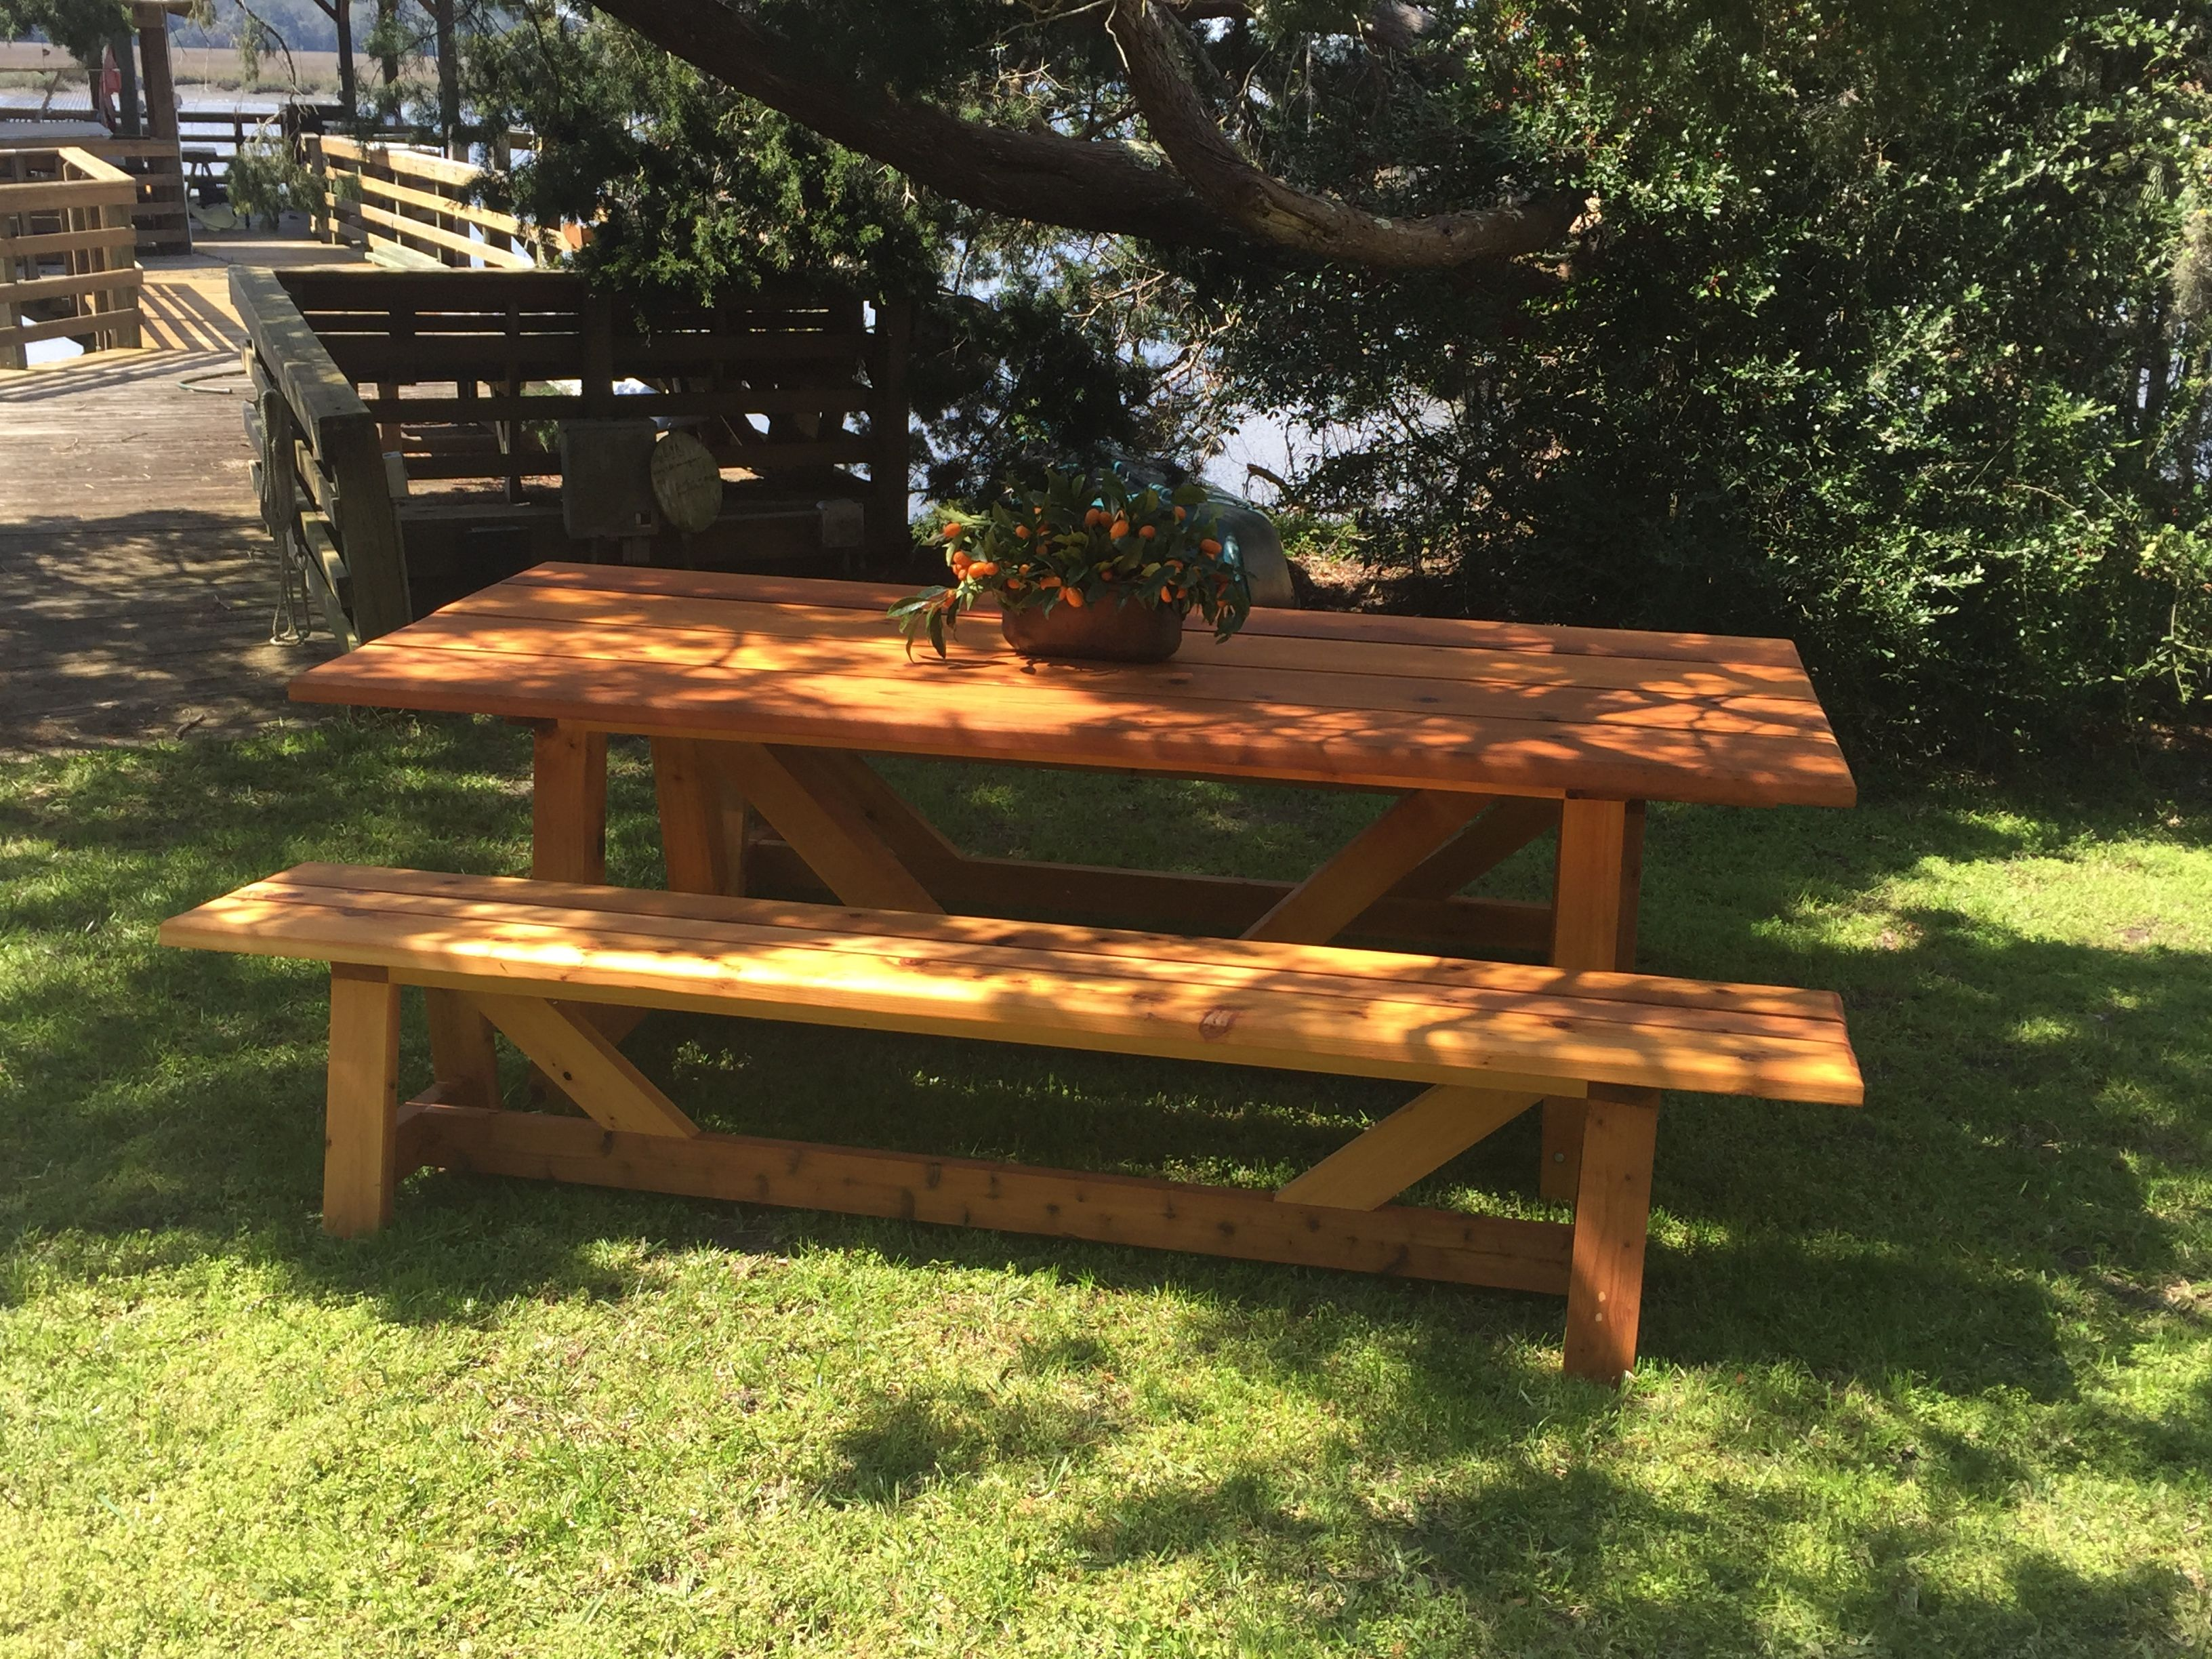 Outdoor Picnic Table Made From Western Red Cedar Using Penofin Wood Care Products To Give It That Beautifull Outdoor Picnic Tables Picnic Table Outdoor Tables